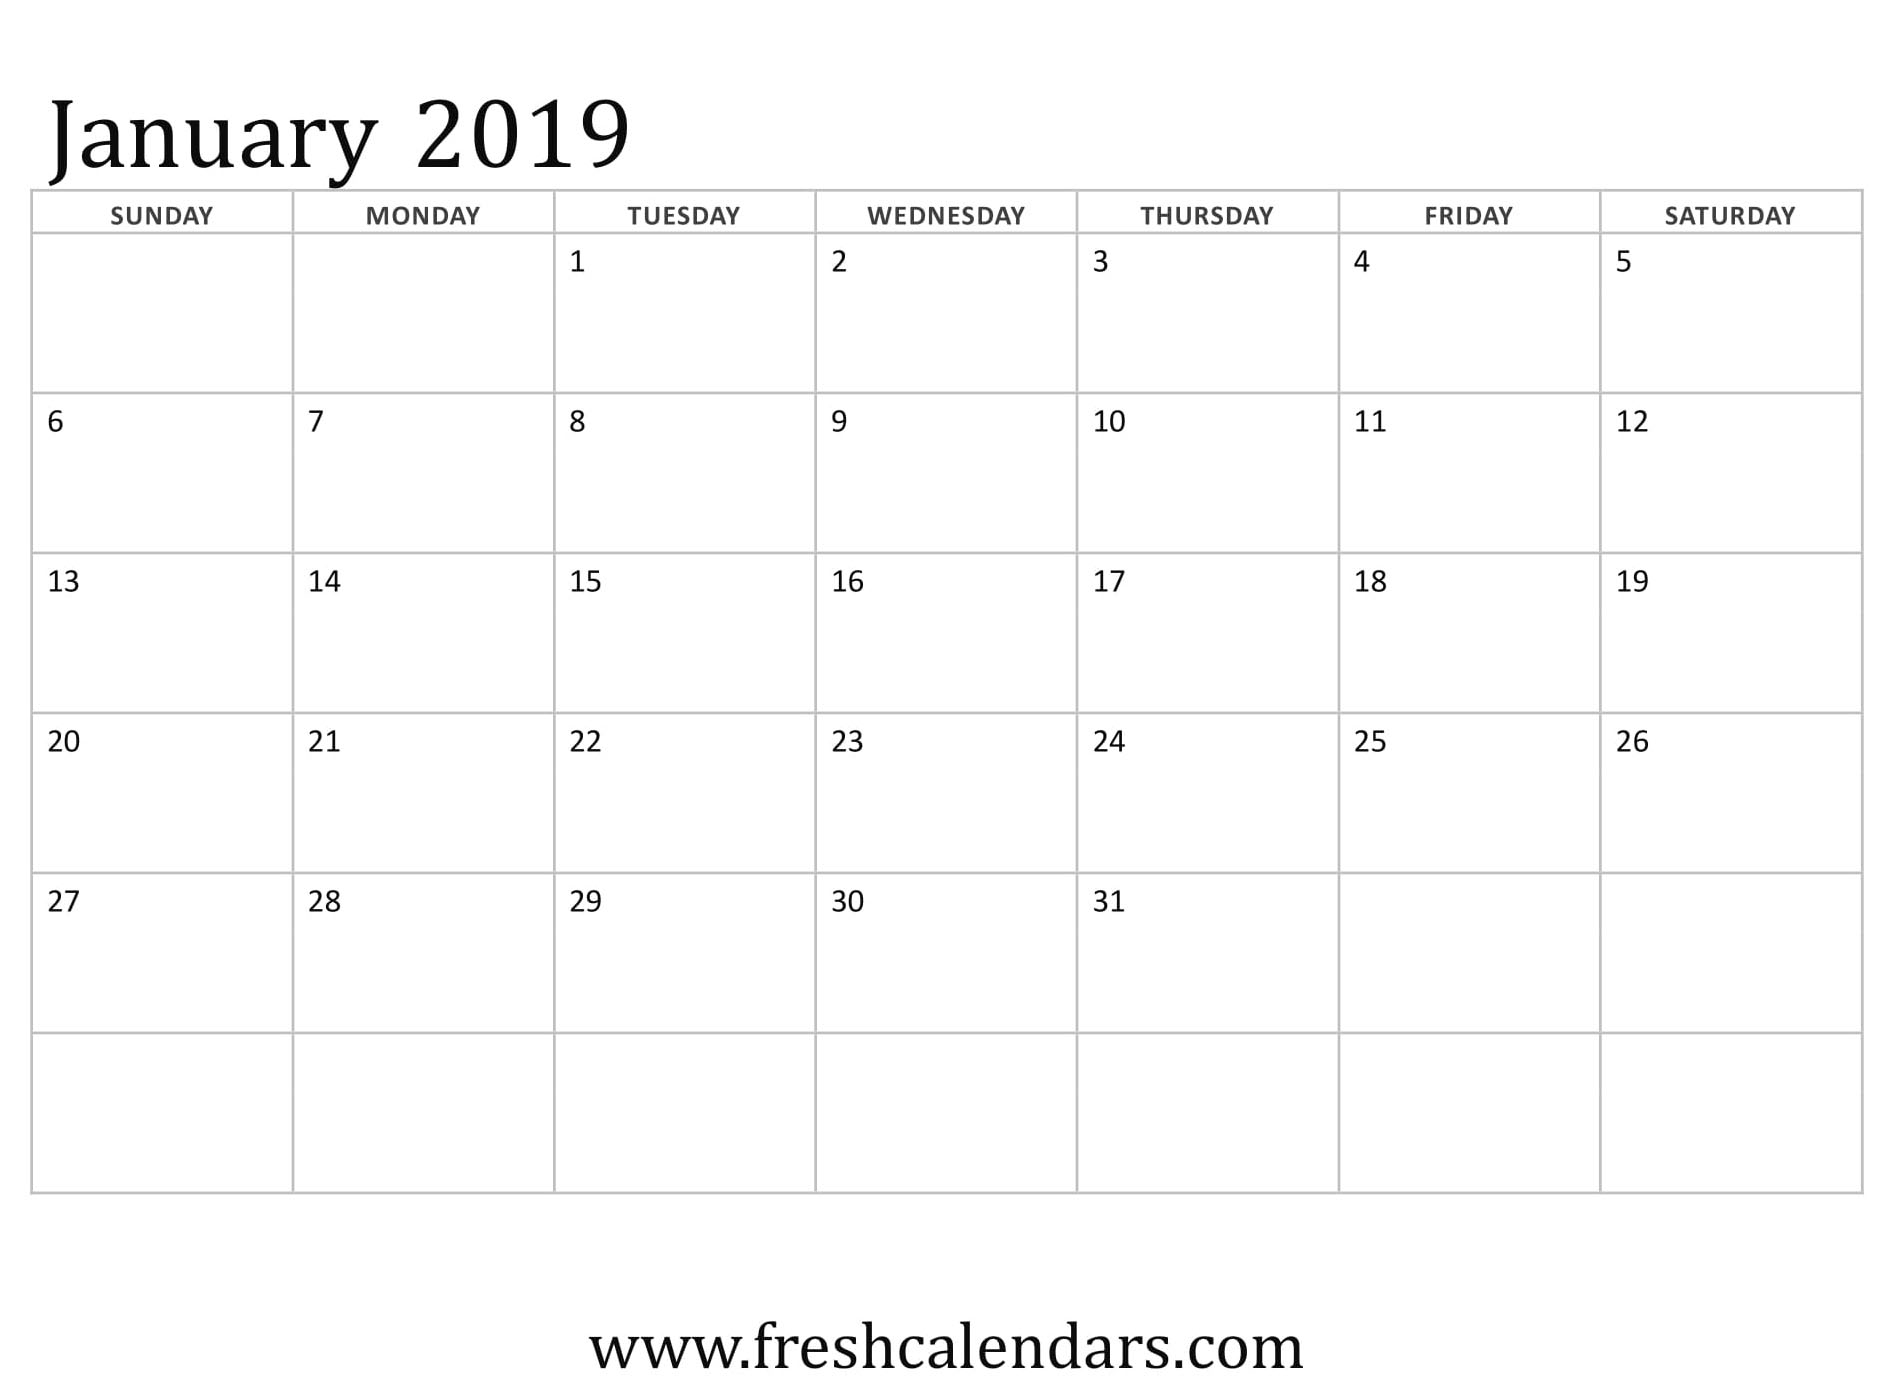 January 2019 Calendar Printable Fresh Calendars